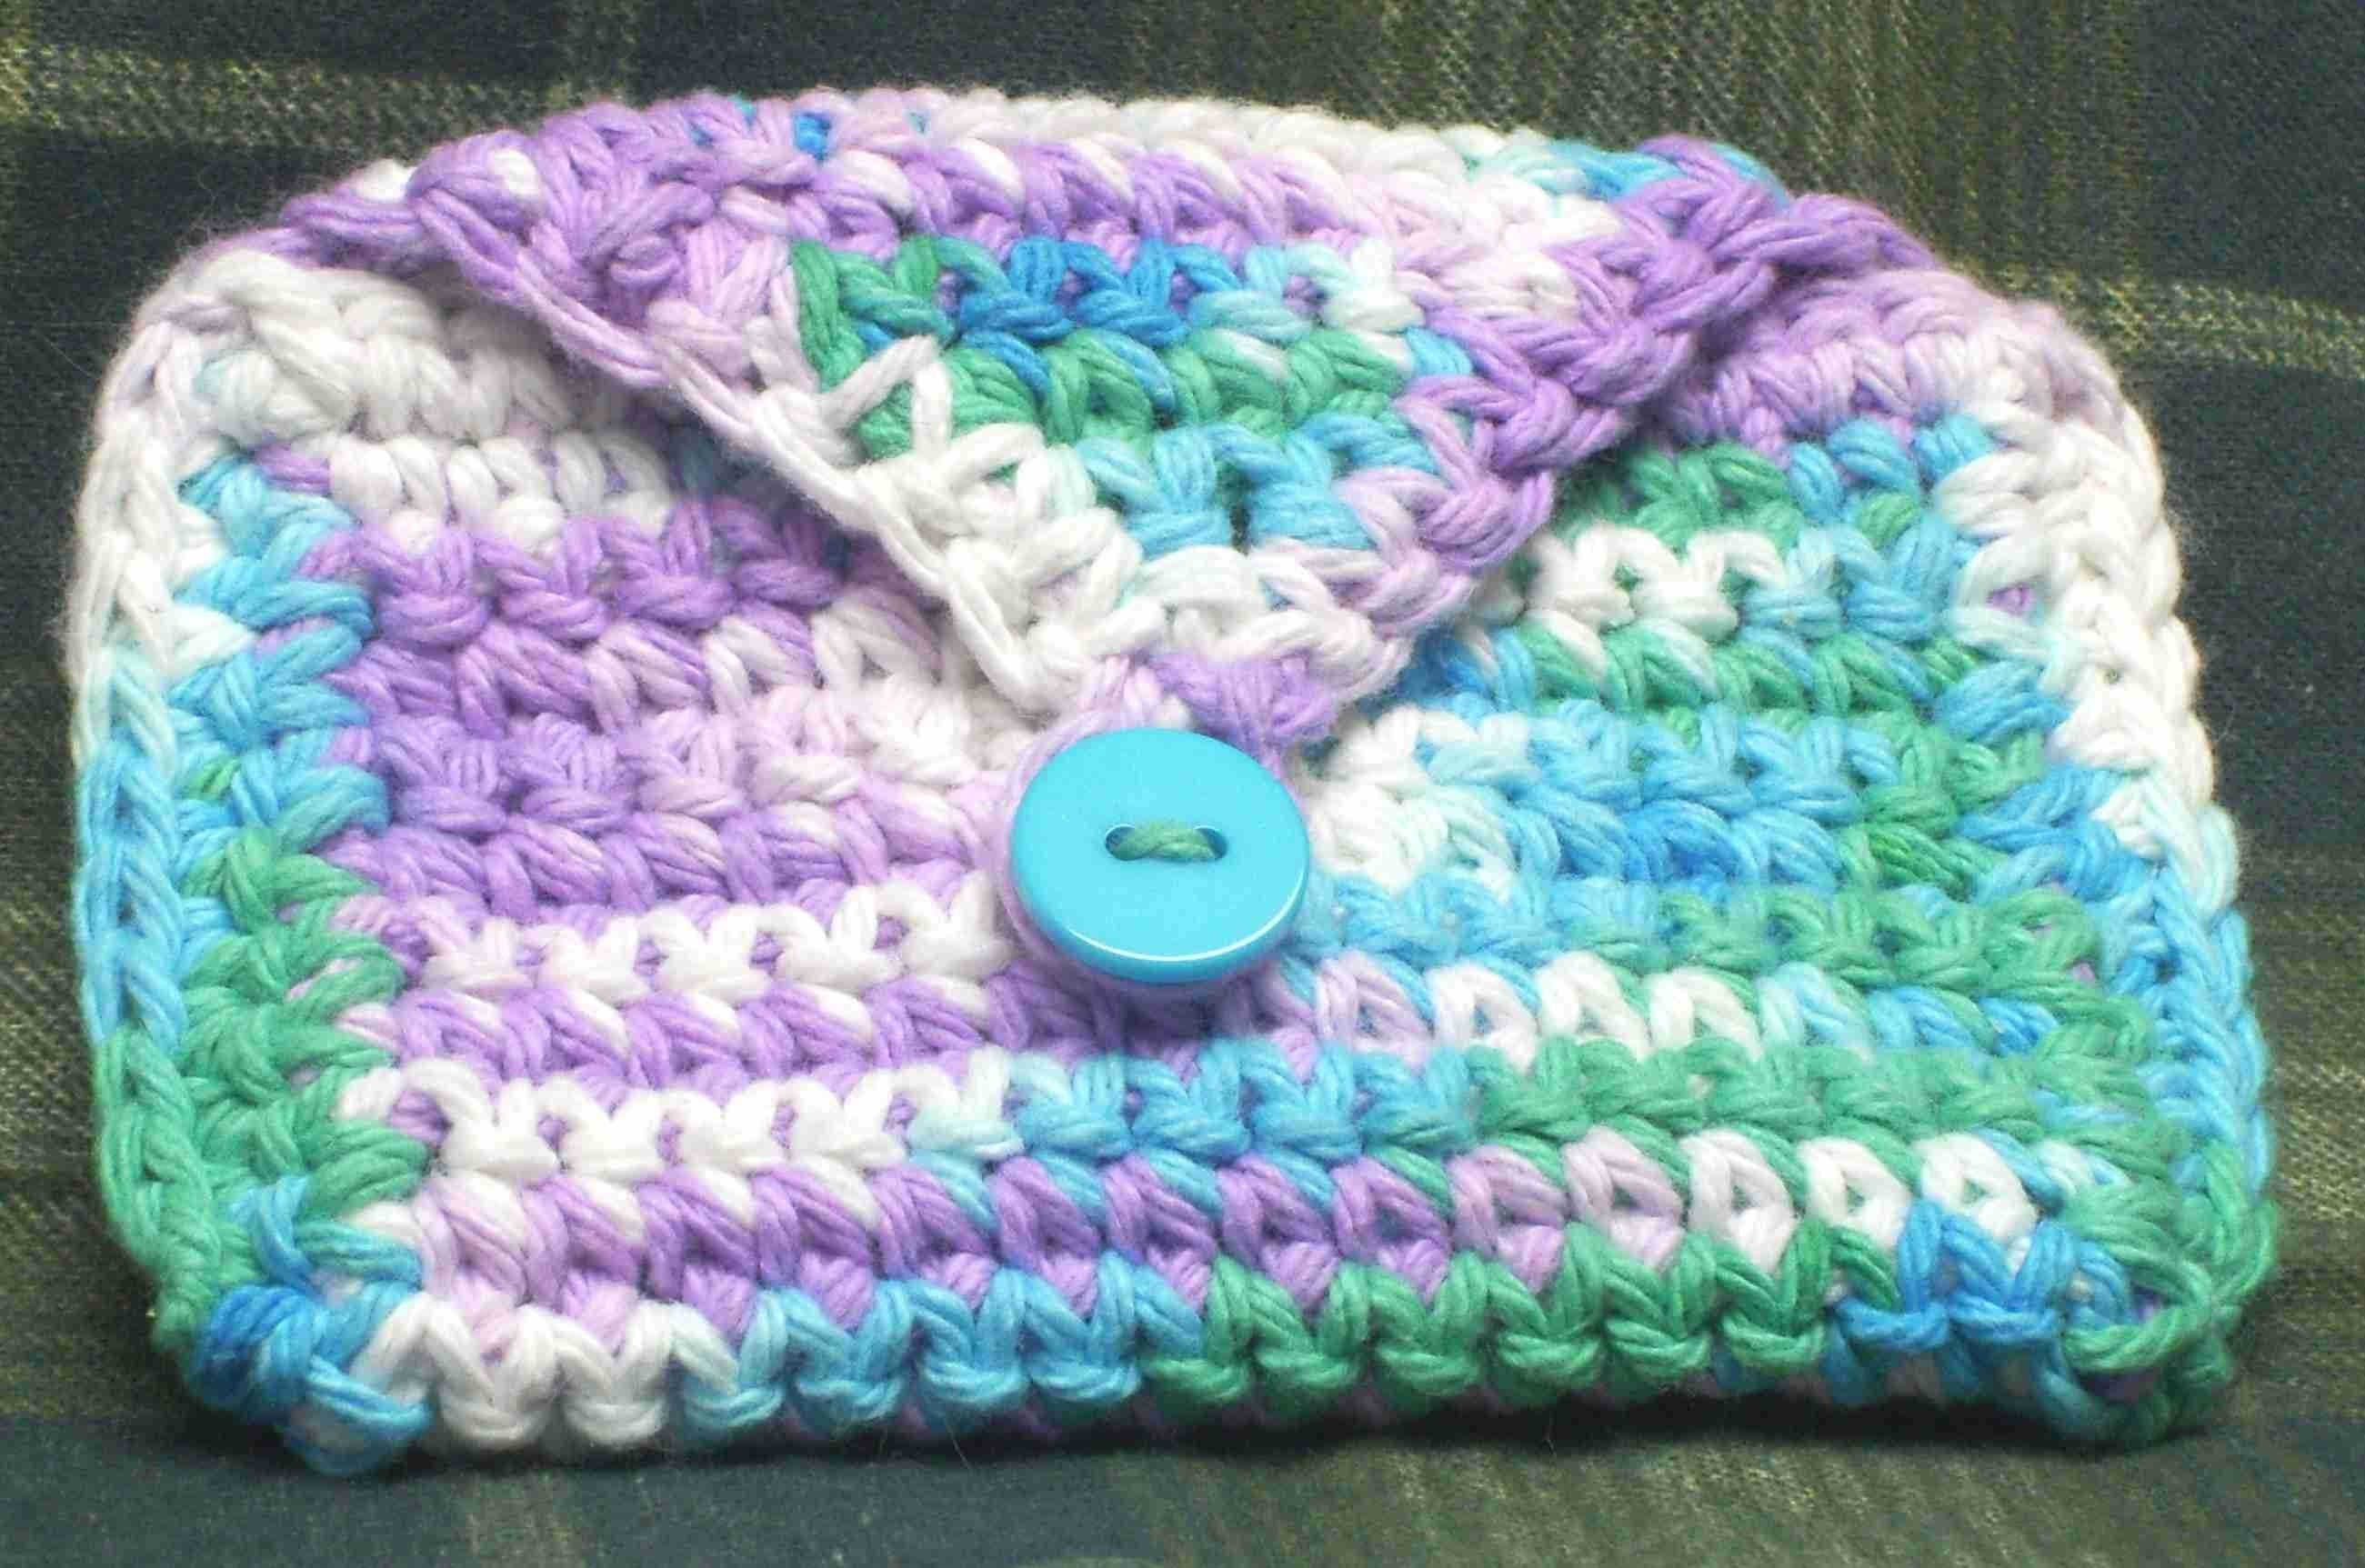 Knitting Dragonflies: Crochet change purse pattern, tutorial and